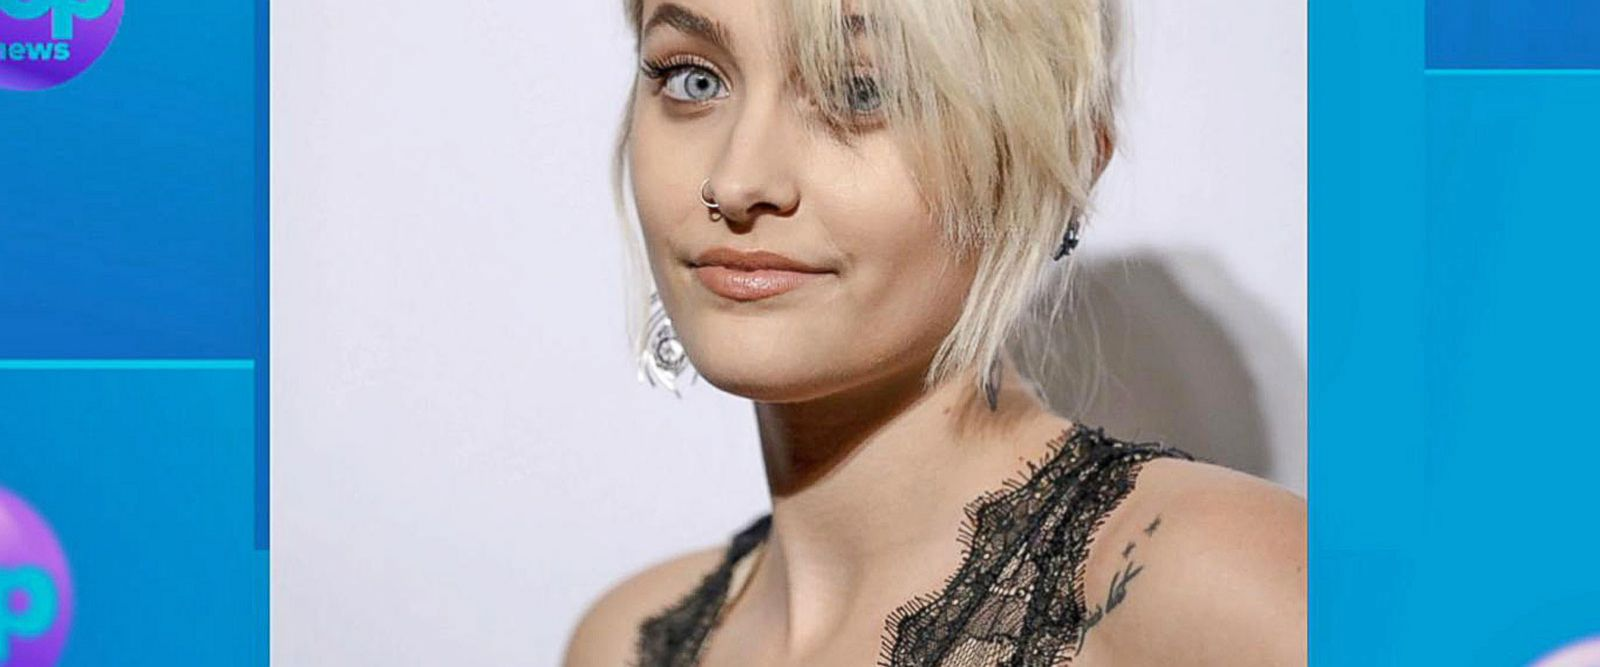 VIDEO: Paris Jackson to grace cover of CR Fashion Book